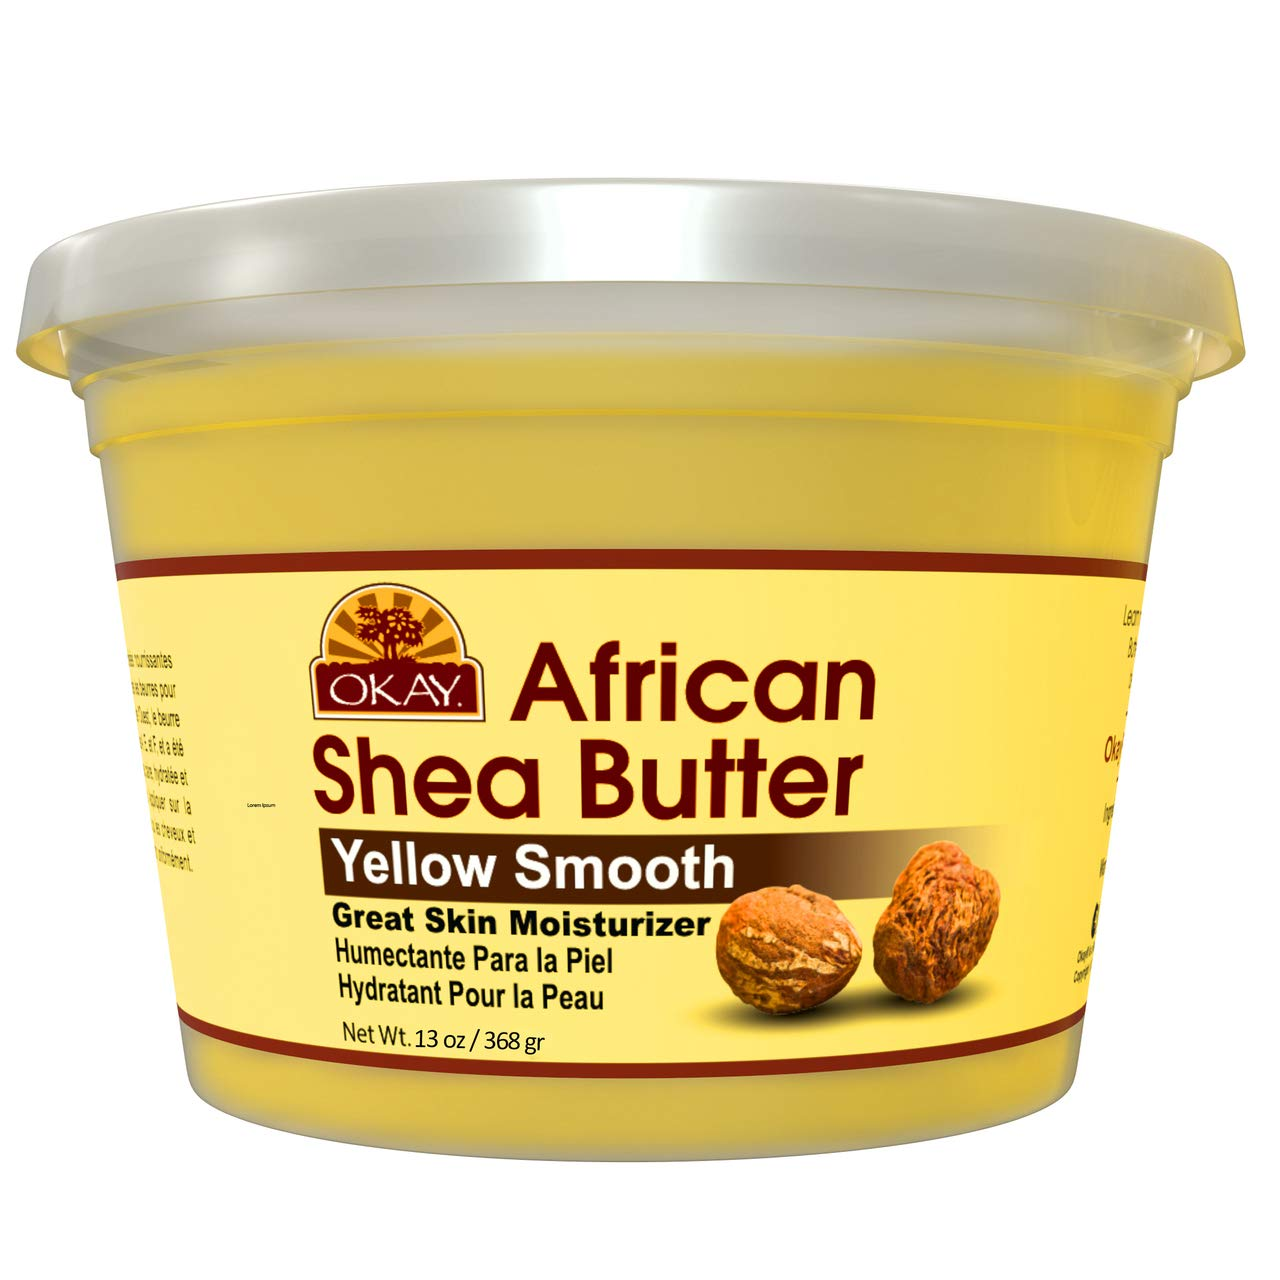 Okay Smooth All Natural,100% Pure Unrefined Daily Skin Moisturizer For Face & Bodym Yellow, Shea Butter, 16 oz